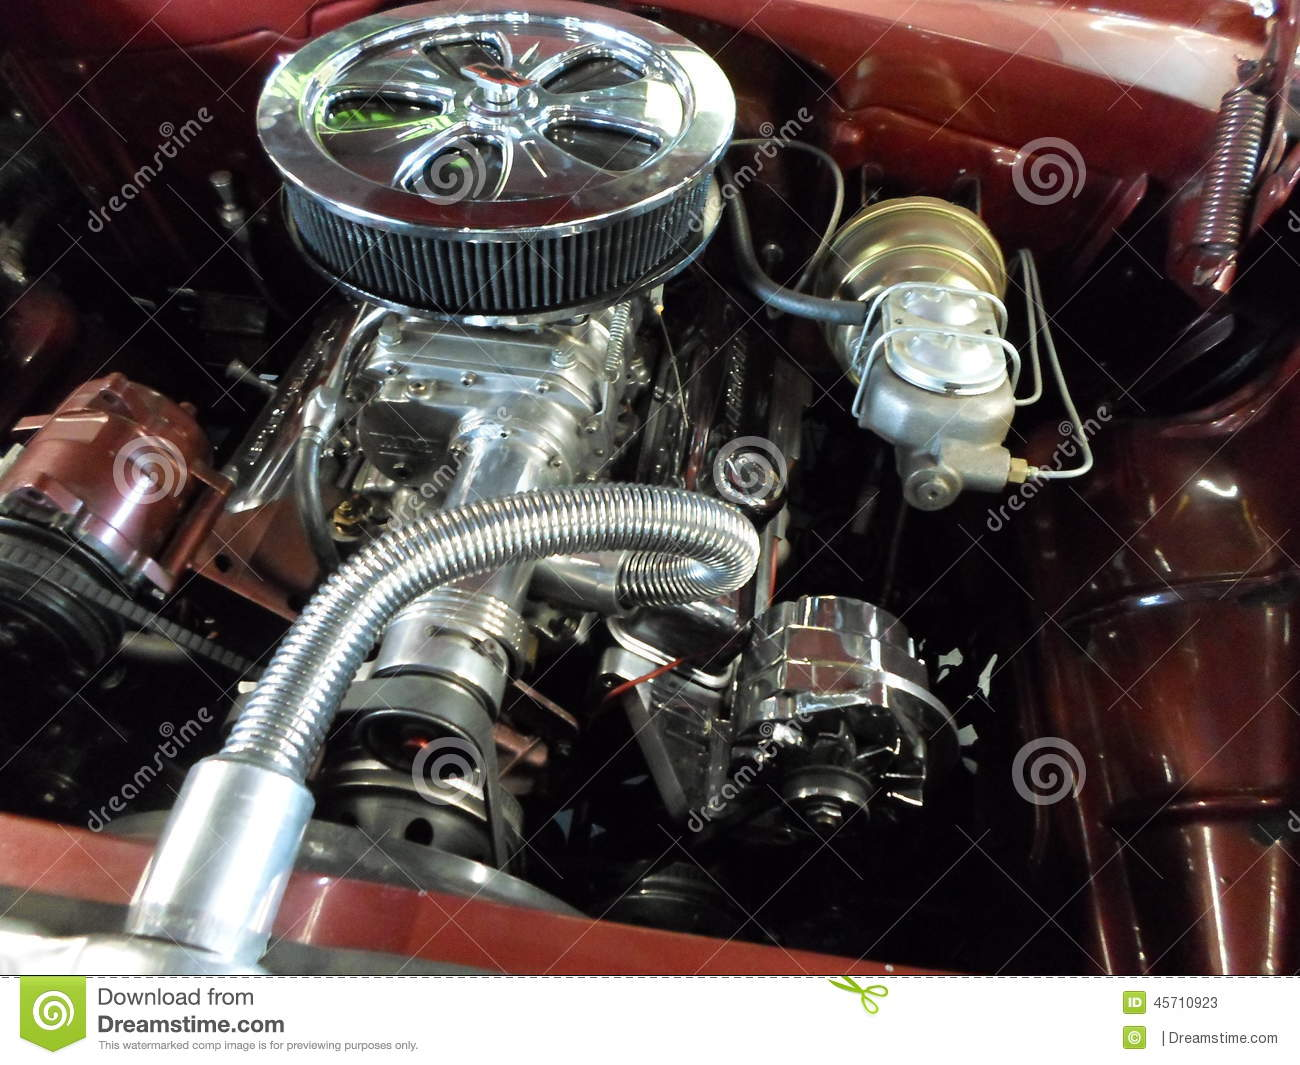 A Beautifully Restored Classic Car Engine With Chrome Parts. Stock ...